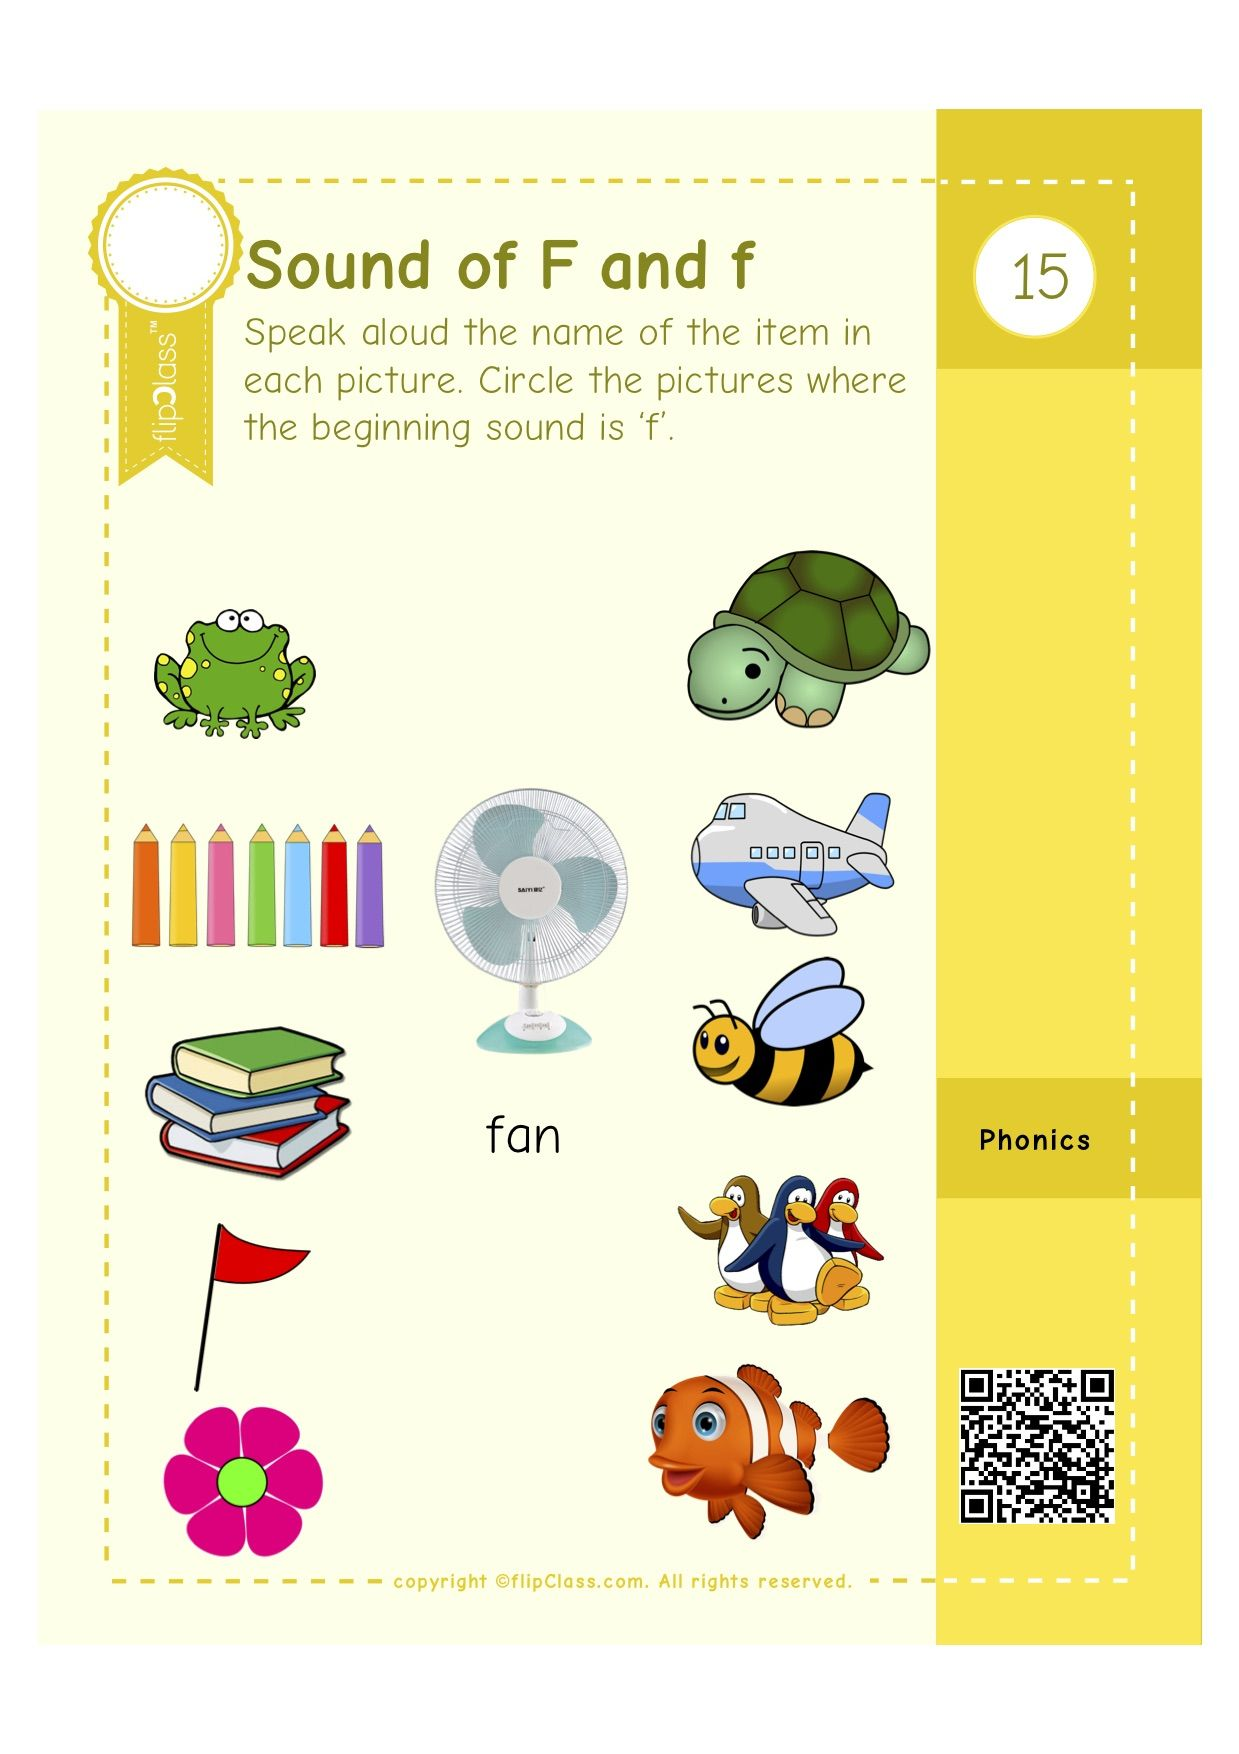 LKG Worksheets: flipClass Genius Kids Workbooks. These colourful and ...